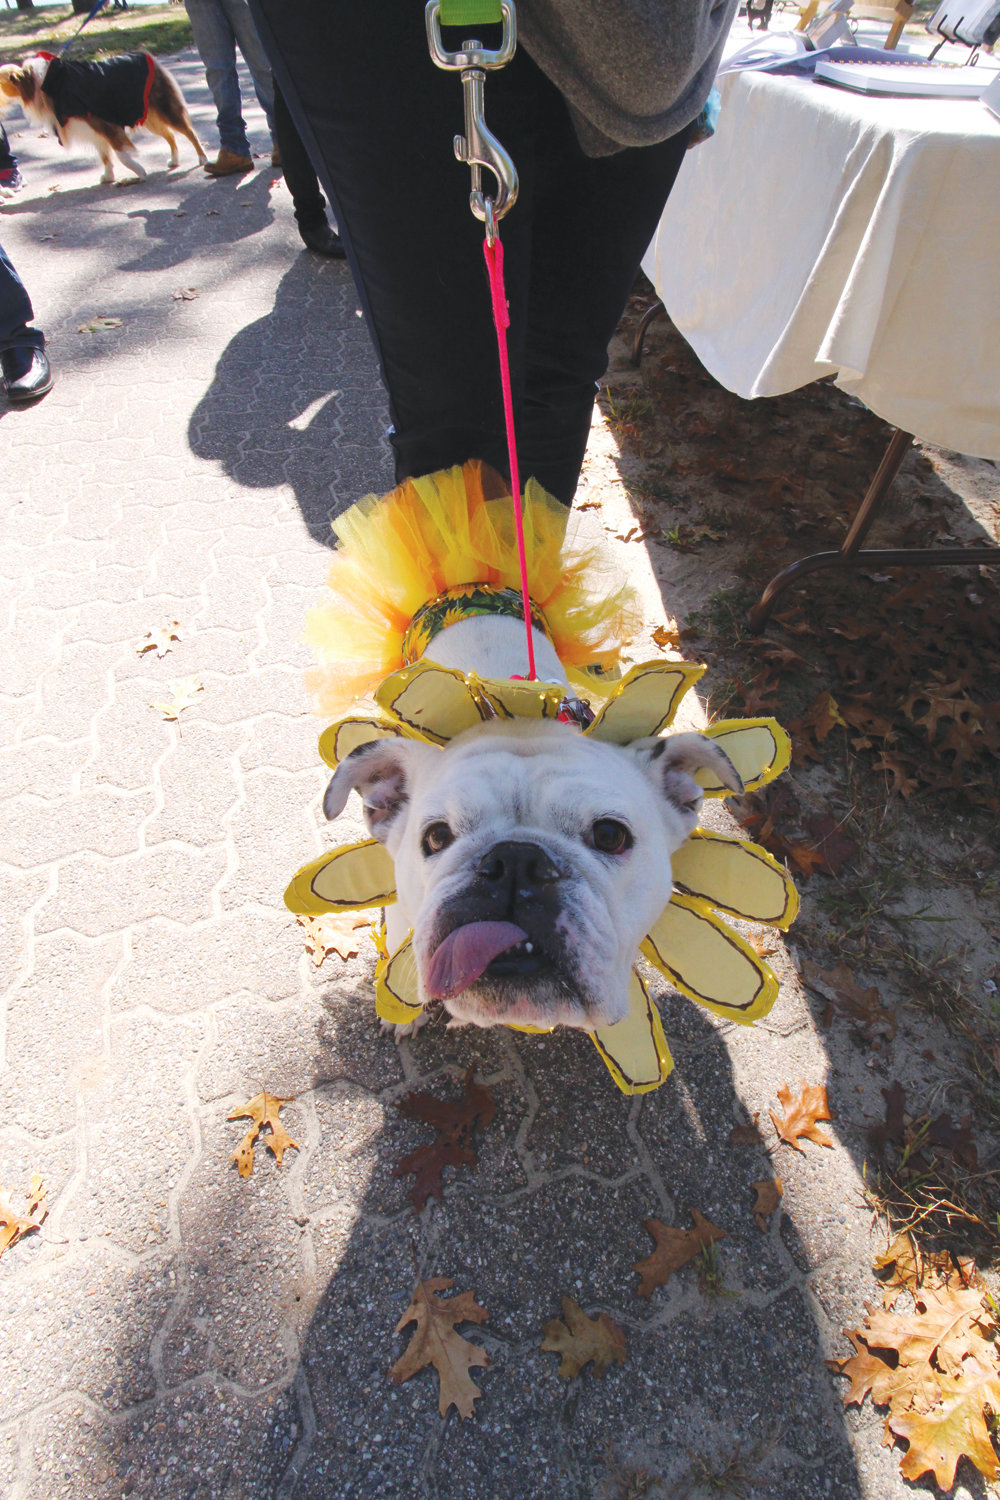 SWEET AS A FLOWER: Who would ever imagine a terrier turned sunflower? Leave it to Tara Achterberg to dress up the family pet, Coco, for the annual dog walk sponsored by the Friends of the Warwick Animal Shelter held Saturday at City Park.